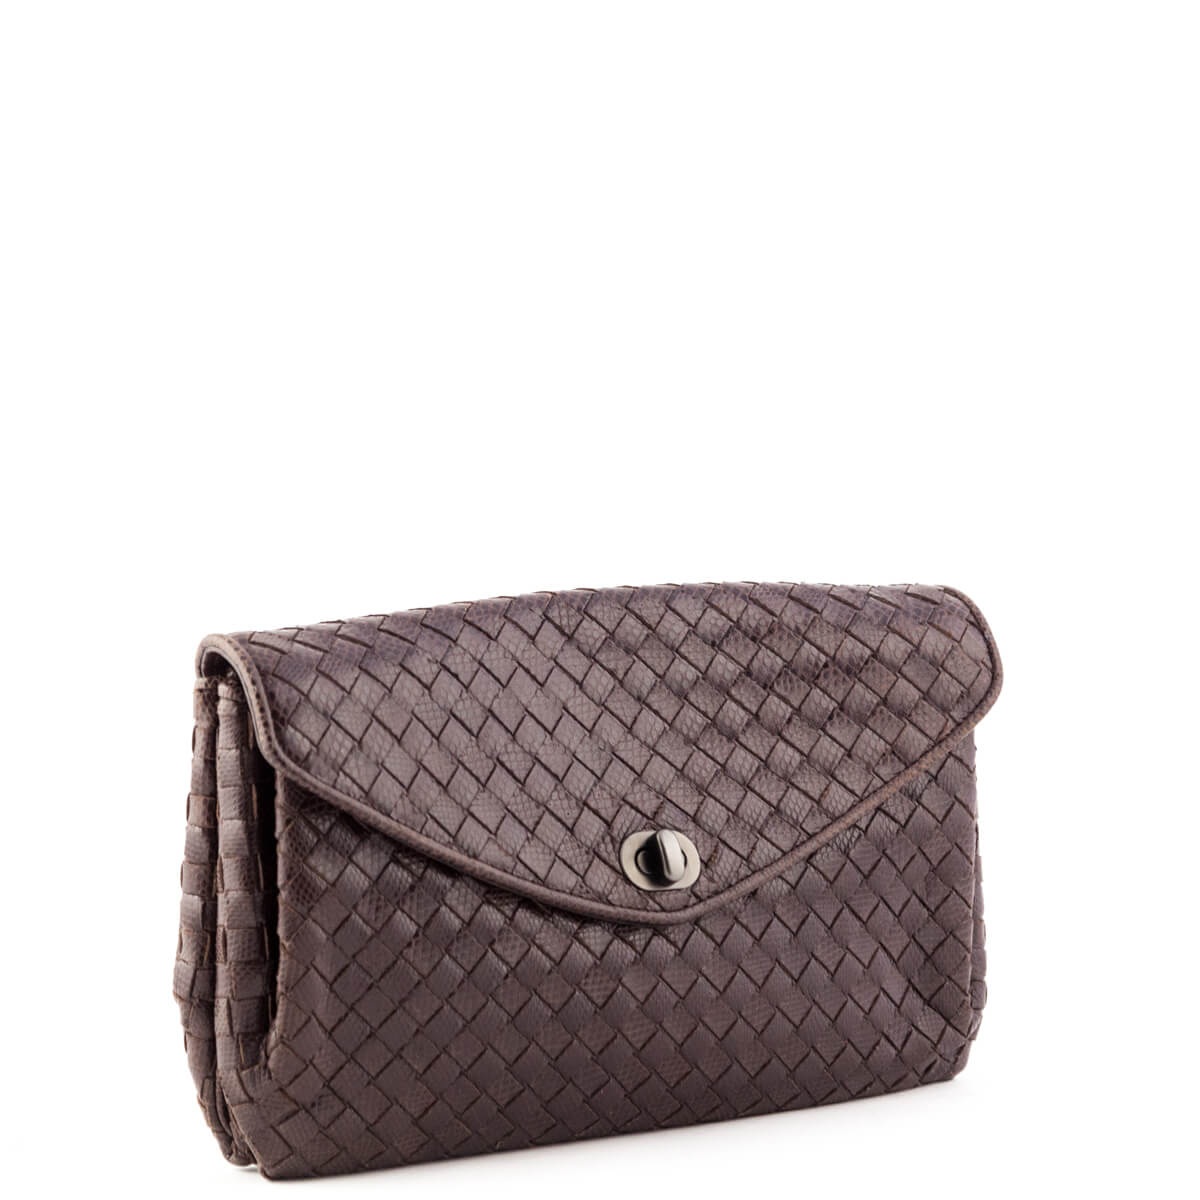 d0b8607027 ... Bottega Veneta Brown Karung Intrecciato Clutch - LOVE that BAG -  Preowned Authentic Designer Handbags ...